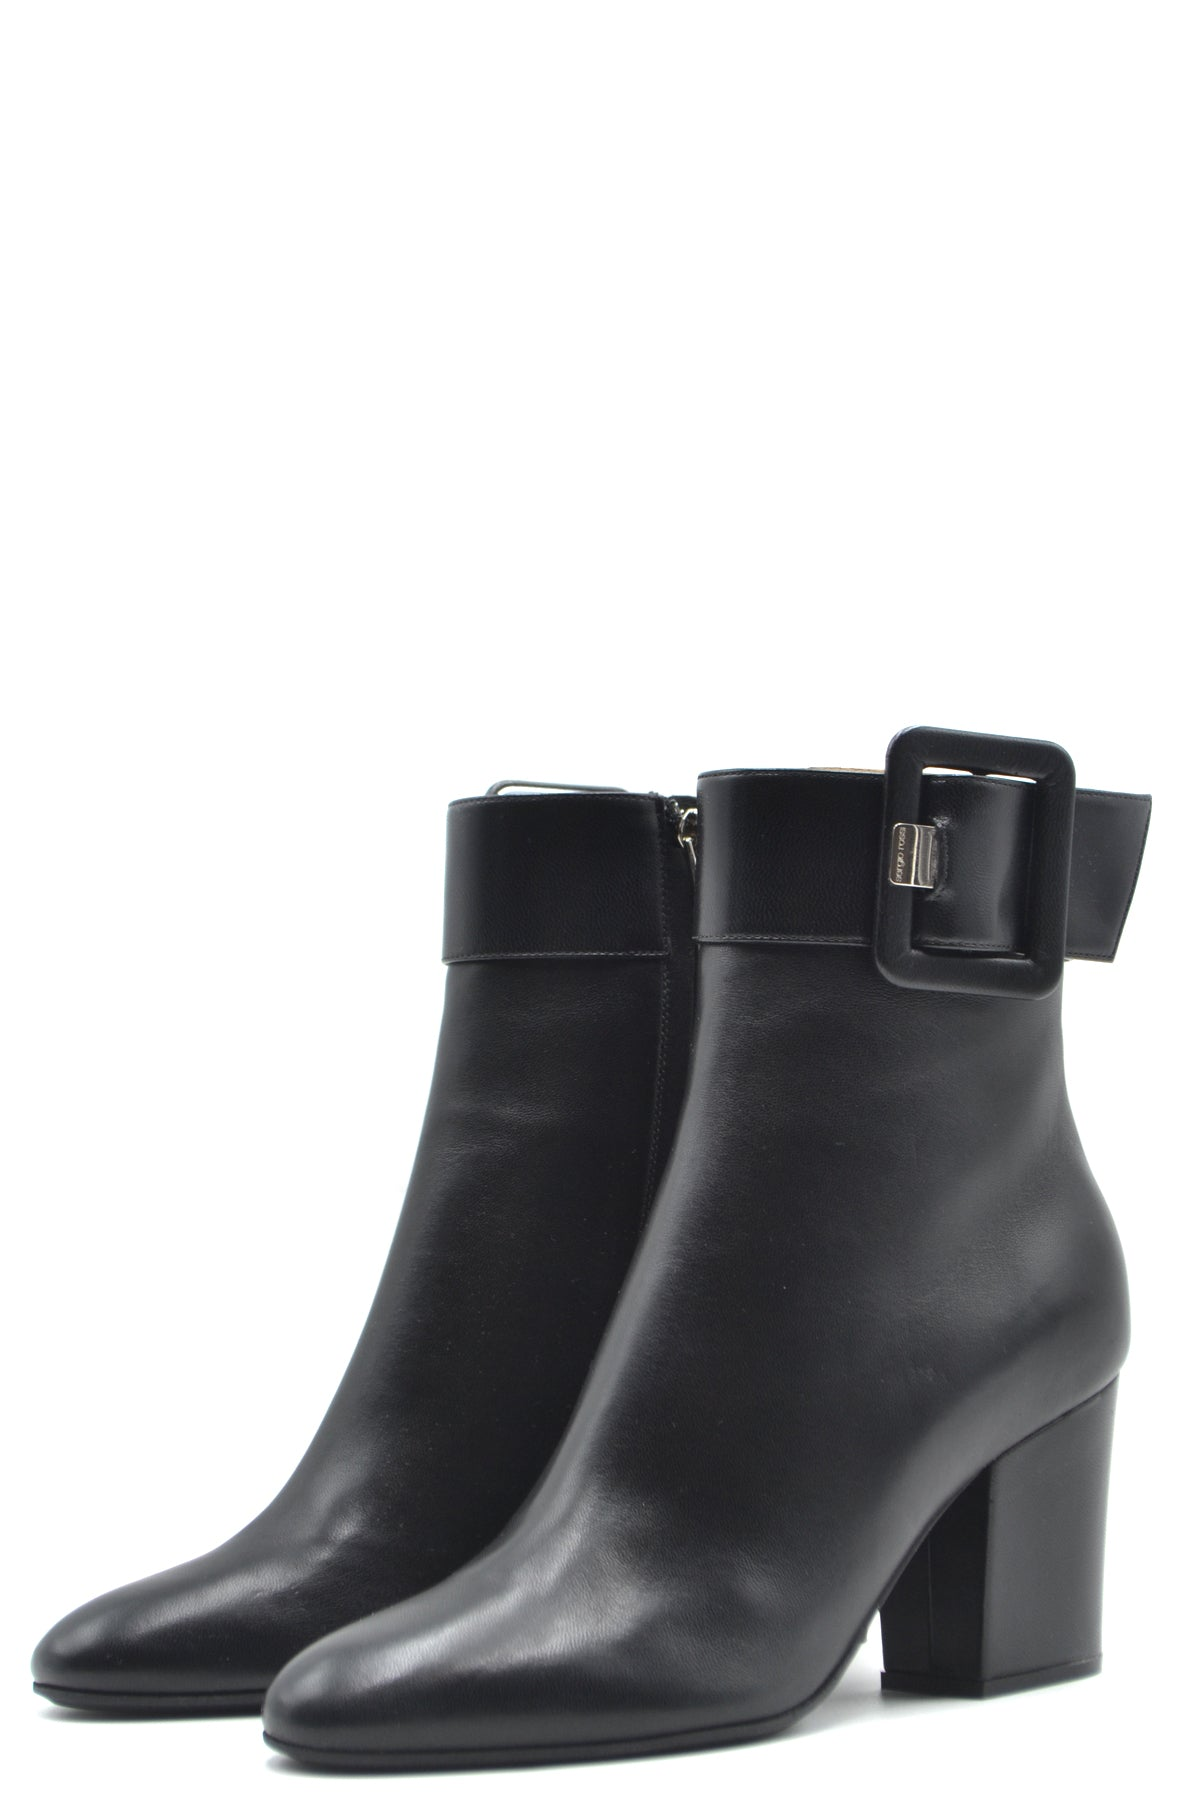 Shoes Sergio Rossi-Women's Fashion - Women's Shoes - Women's Boots-Product Details Terms: New With LabelMain Color: BlackType Of Accessory: BootsSeason: Fall / WinterMade In: ItalyGender: WomanHeel'S Height: 7,5Size: EuComposition: Leather 100%Year: 2020Manufacturer Part Number: A85851 Mnan07 1000-Keyomi-Sook